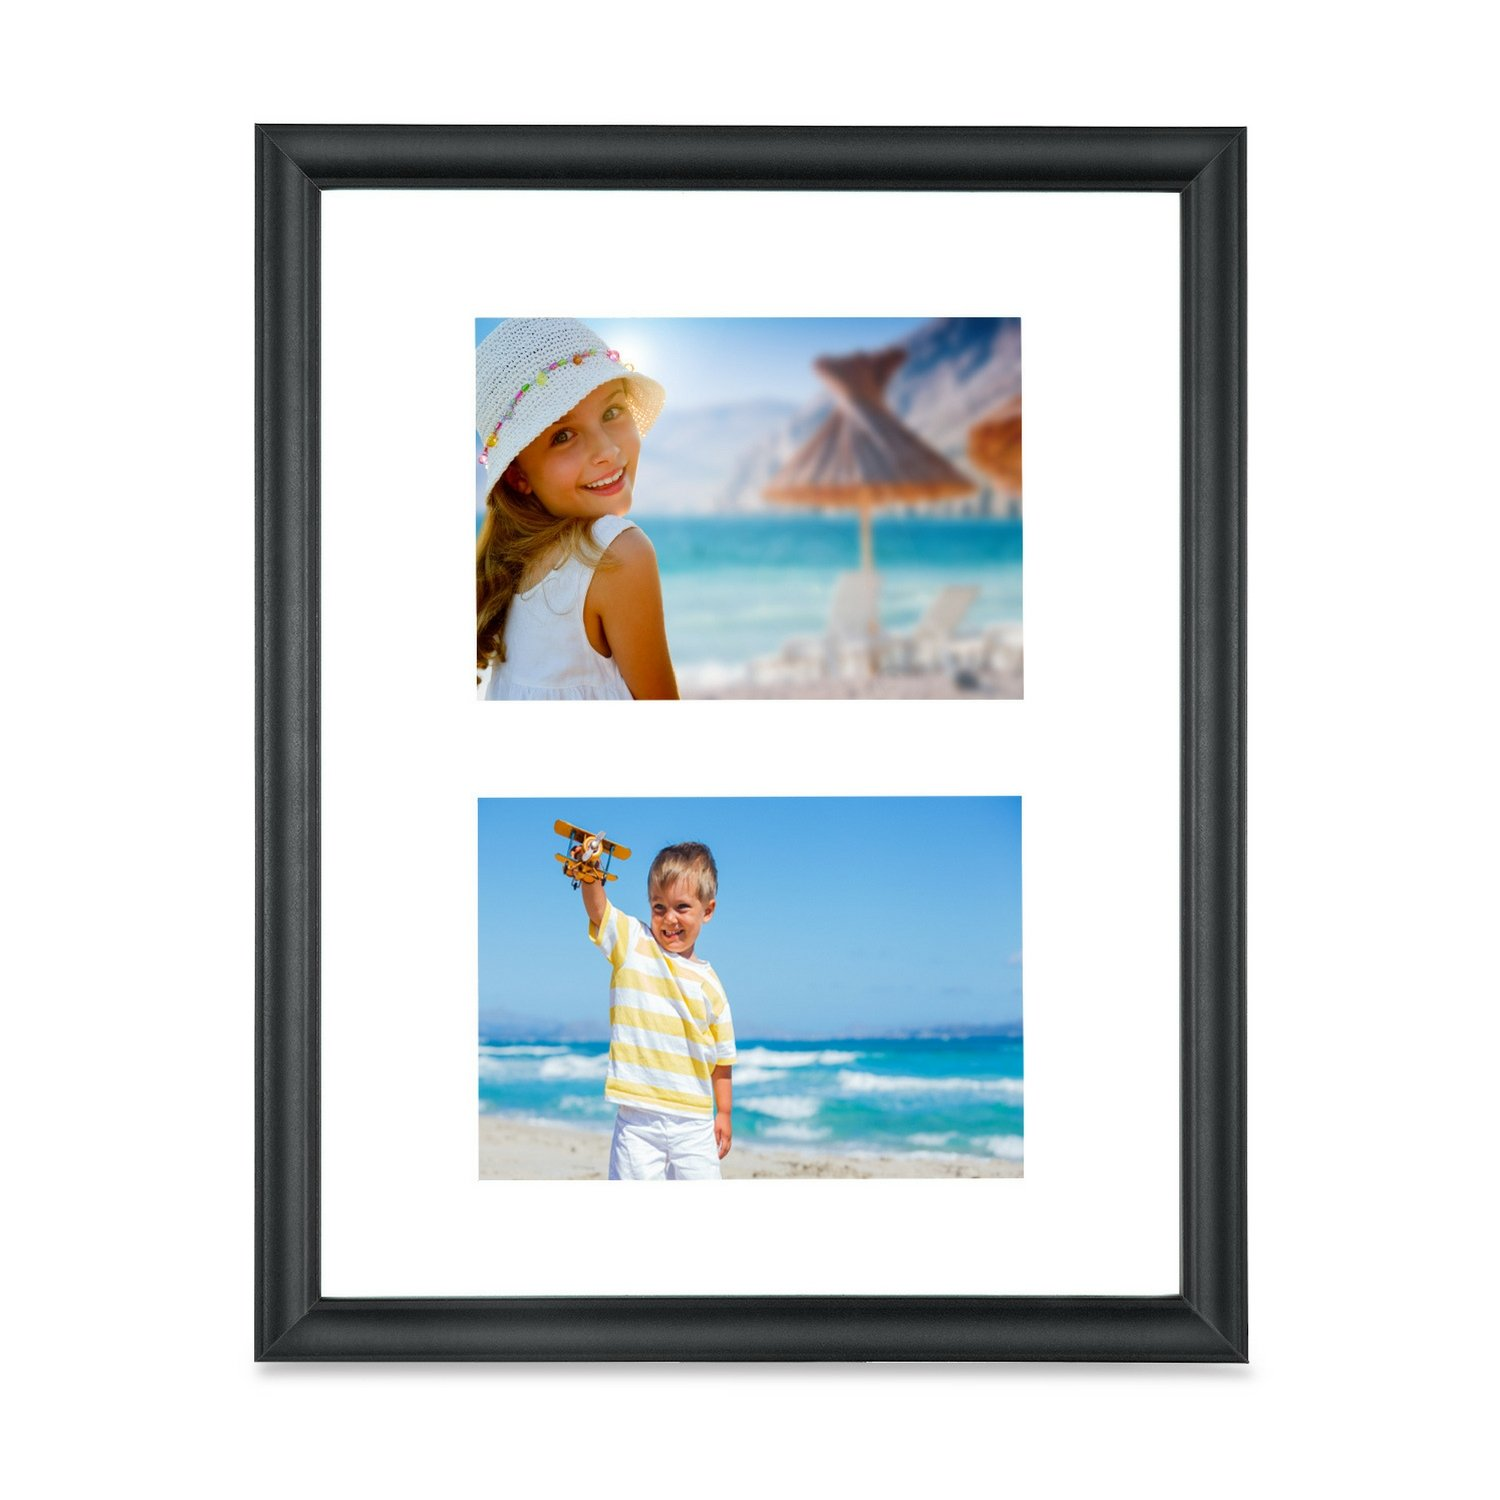 Icona Bay 8x16 Collage Picture Frames With Mat Displays Three 4x6 Photos, Rustic Brown Wooden Finish Frame, Photo Collage Frames for Wall or Table, Mat Photo Frames 4 x 6 Included, Lakeland Collection